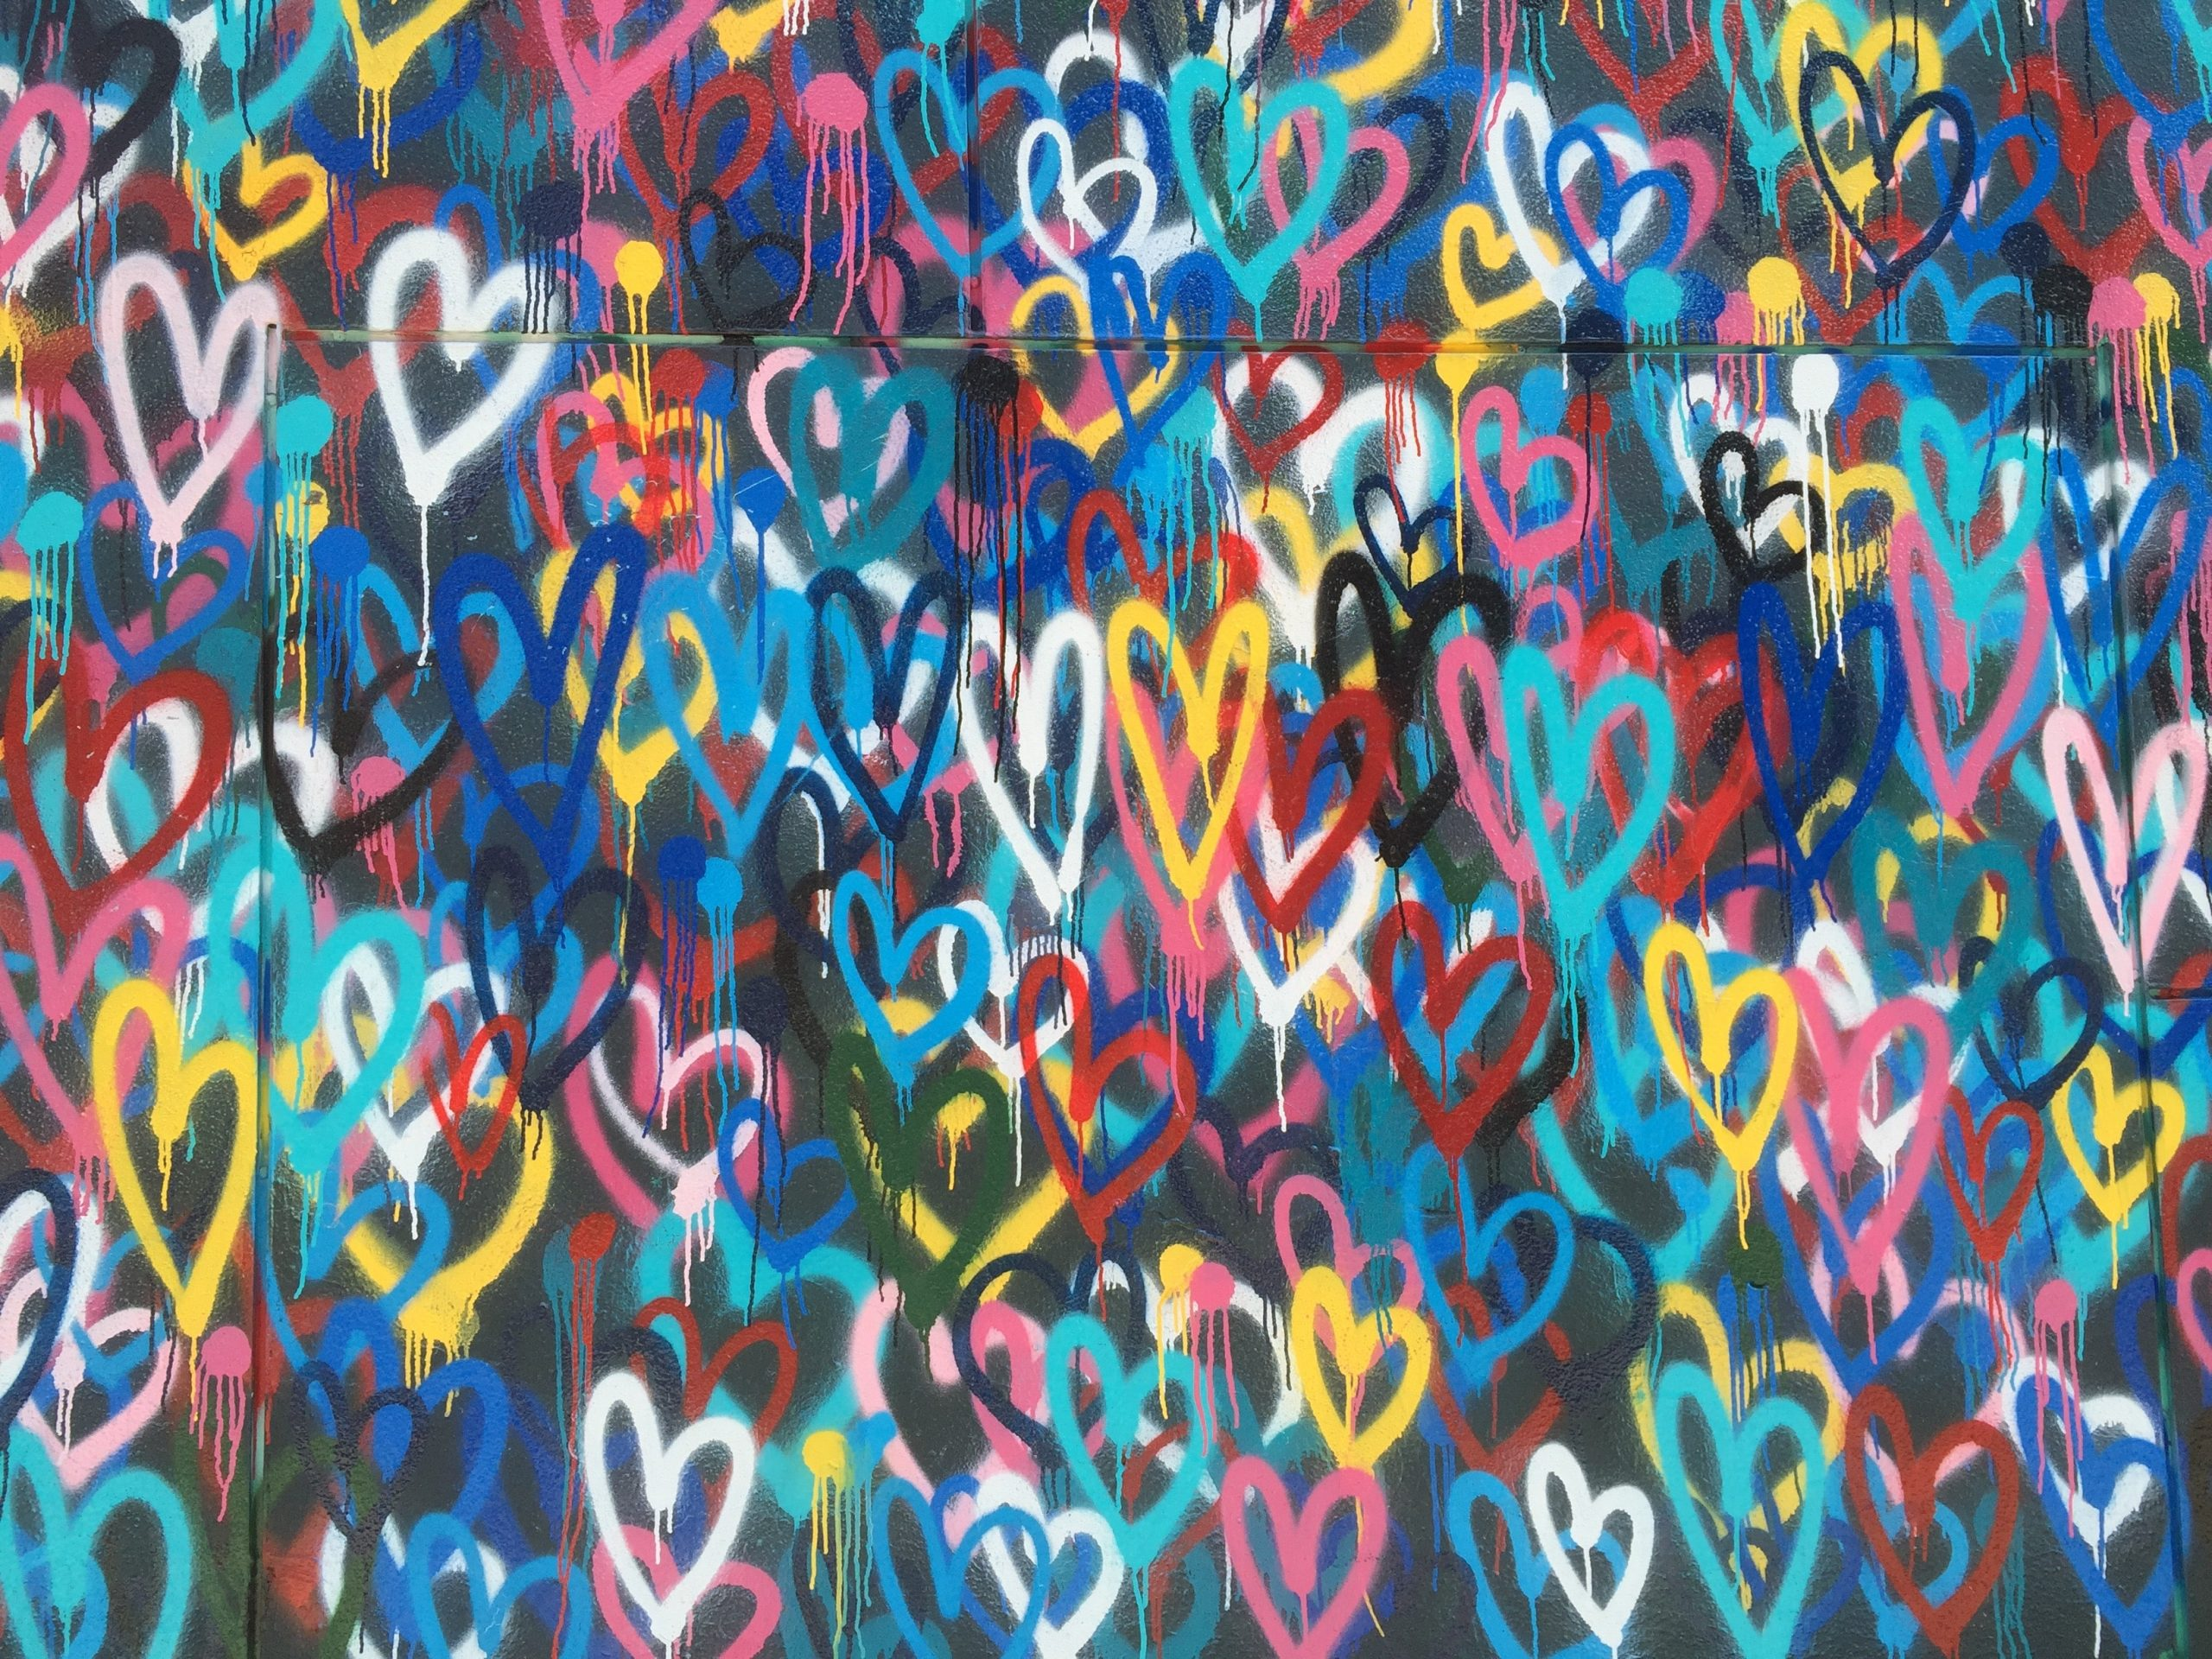 Murial wall of hearts